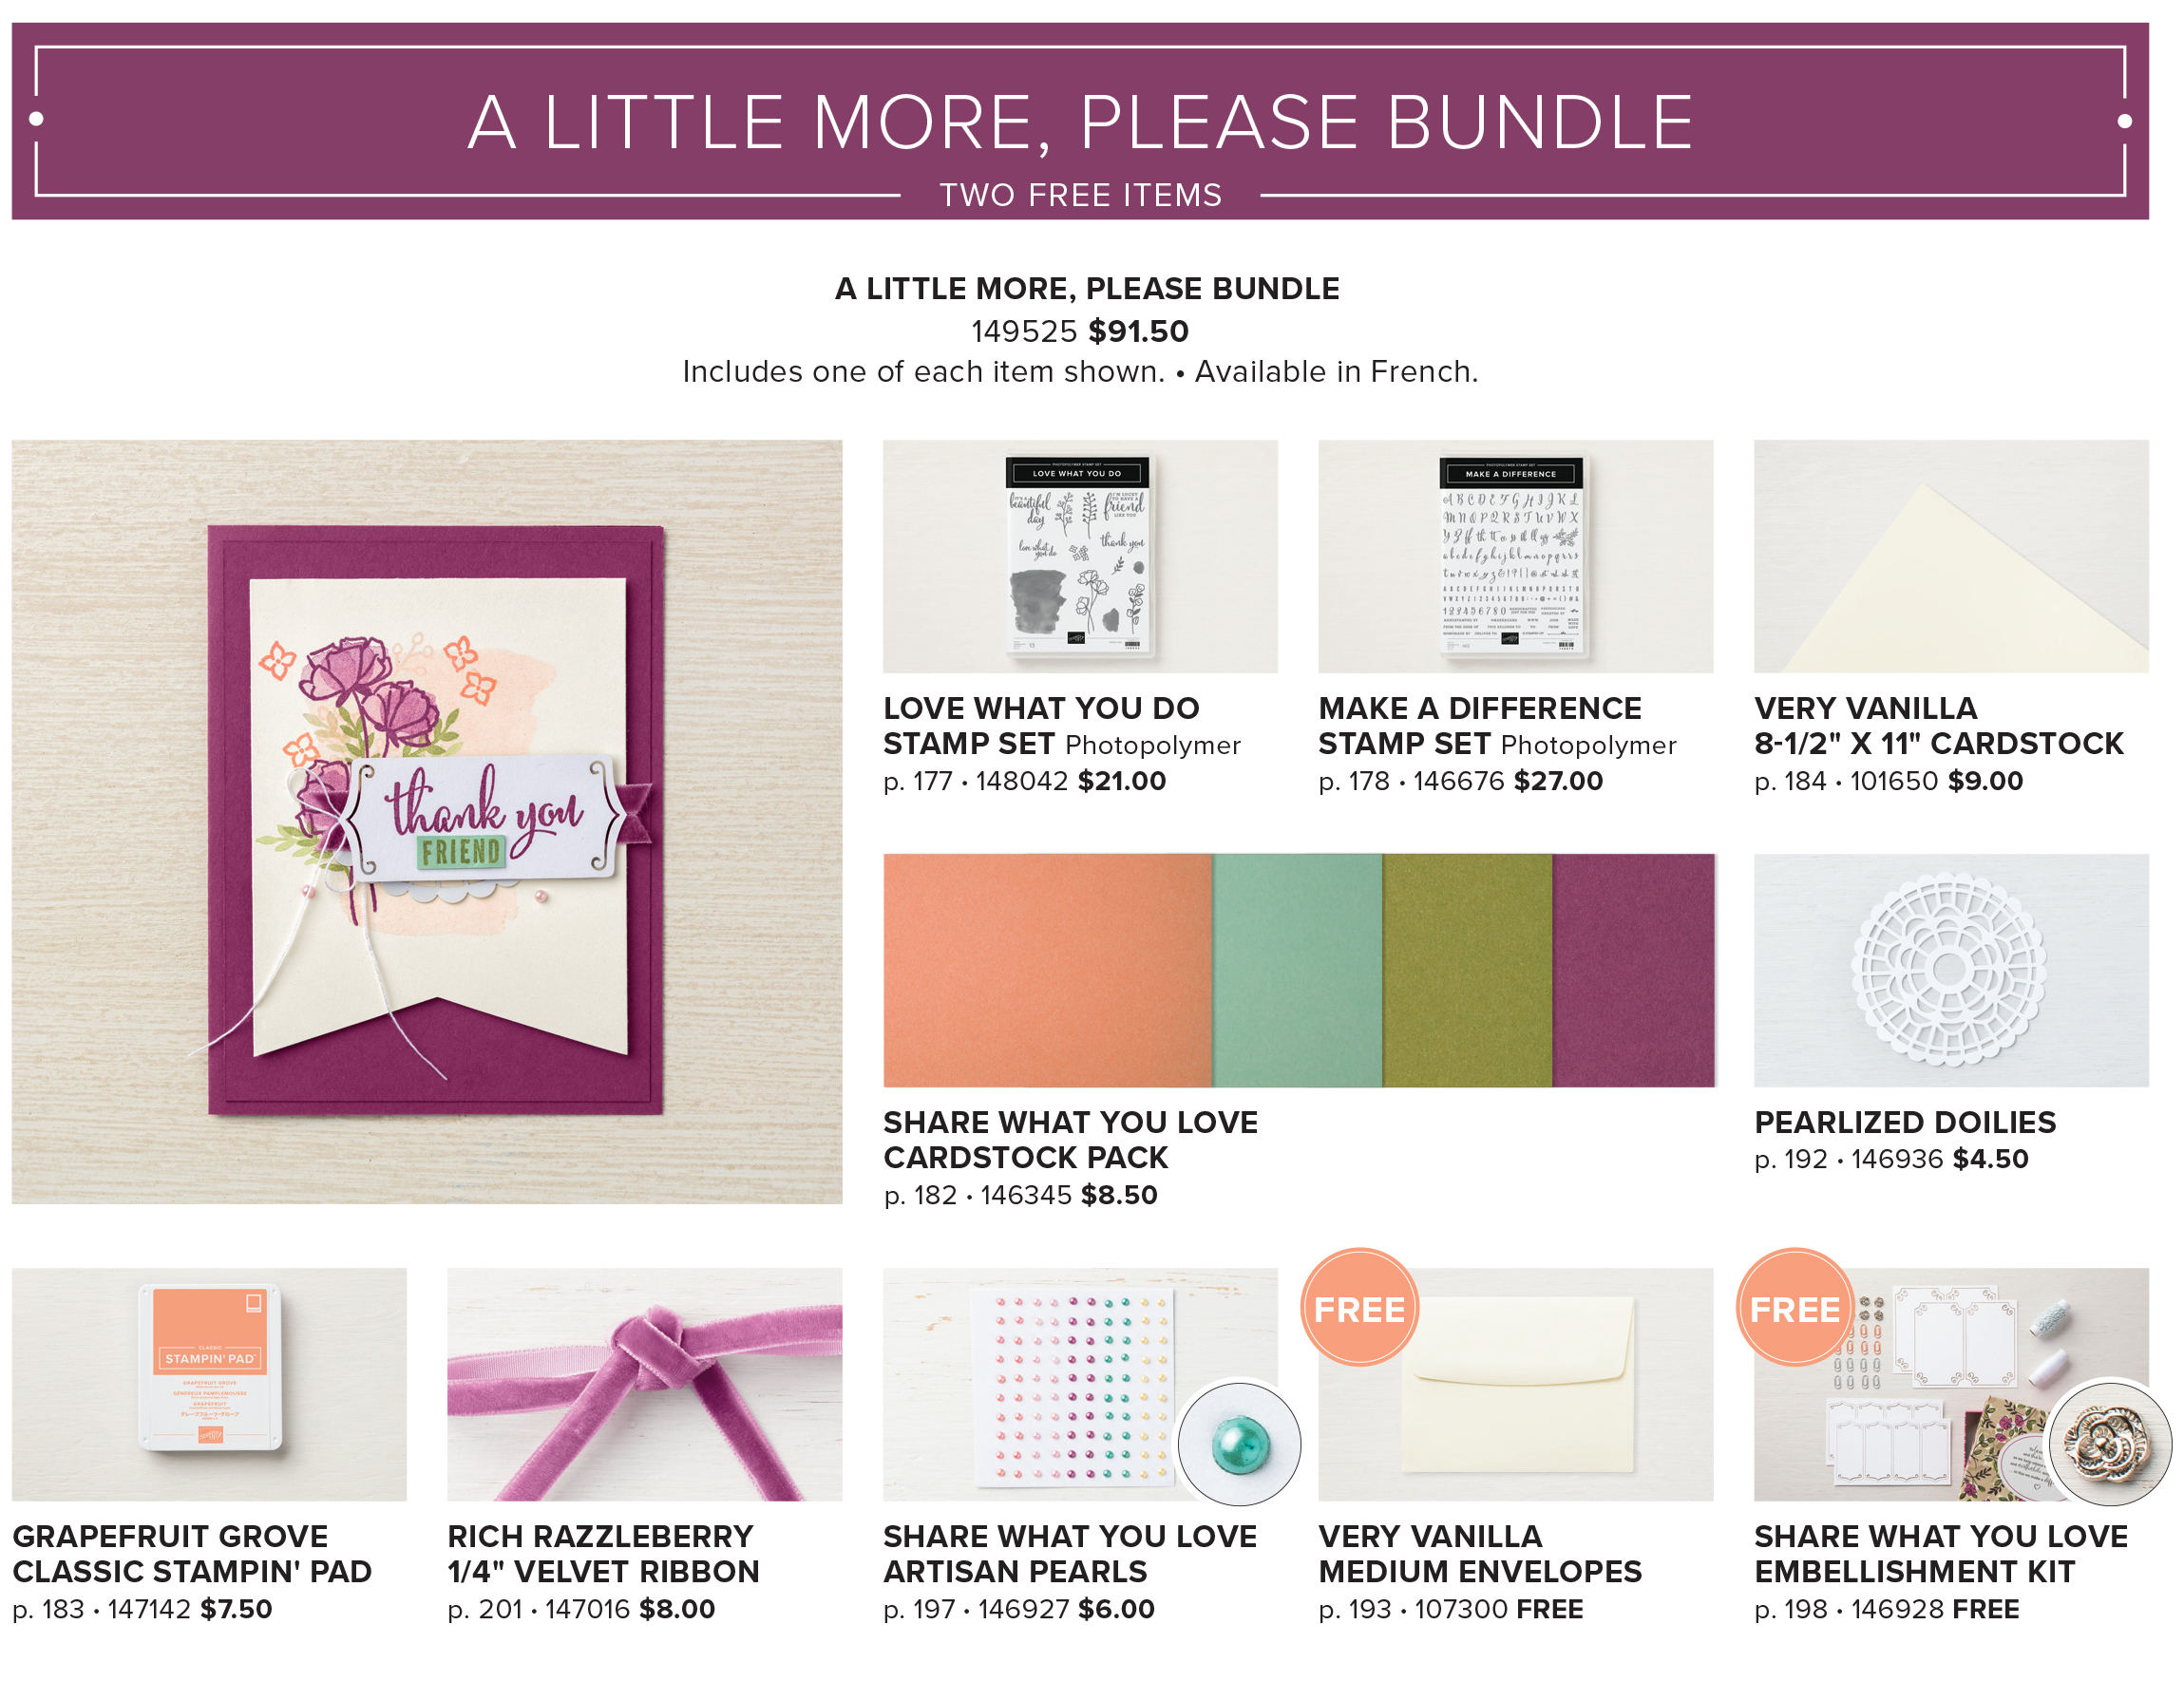 Share What You Love A Little More Bundle